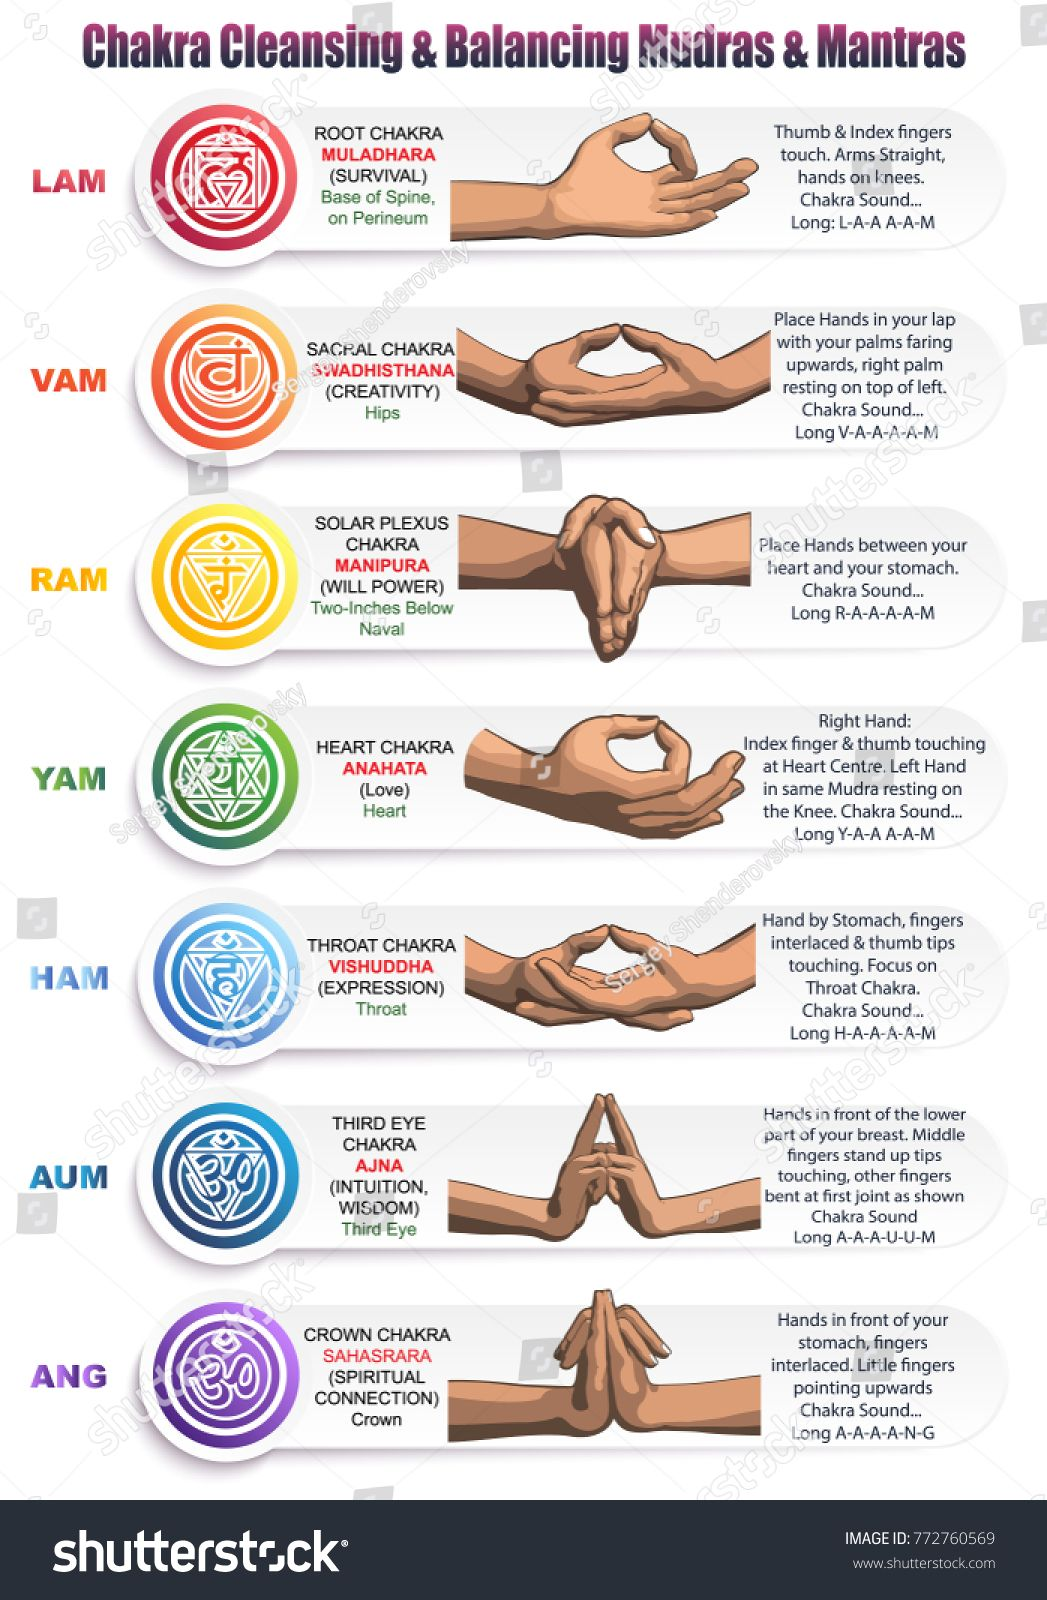 A Table Of Meanings Colors Symbols Signs And Gestures For Chakras